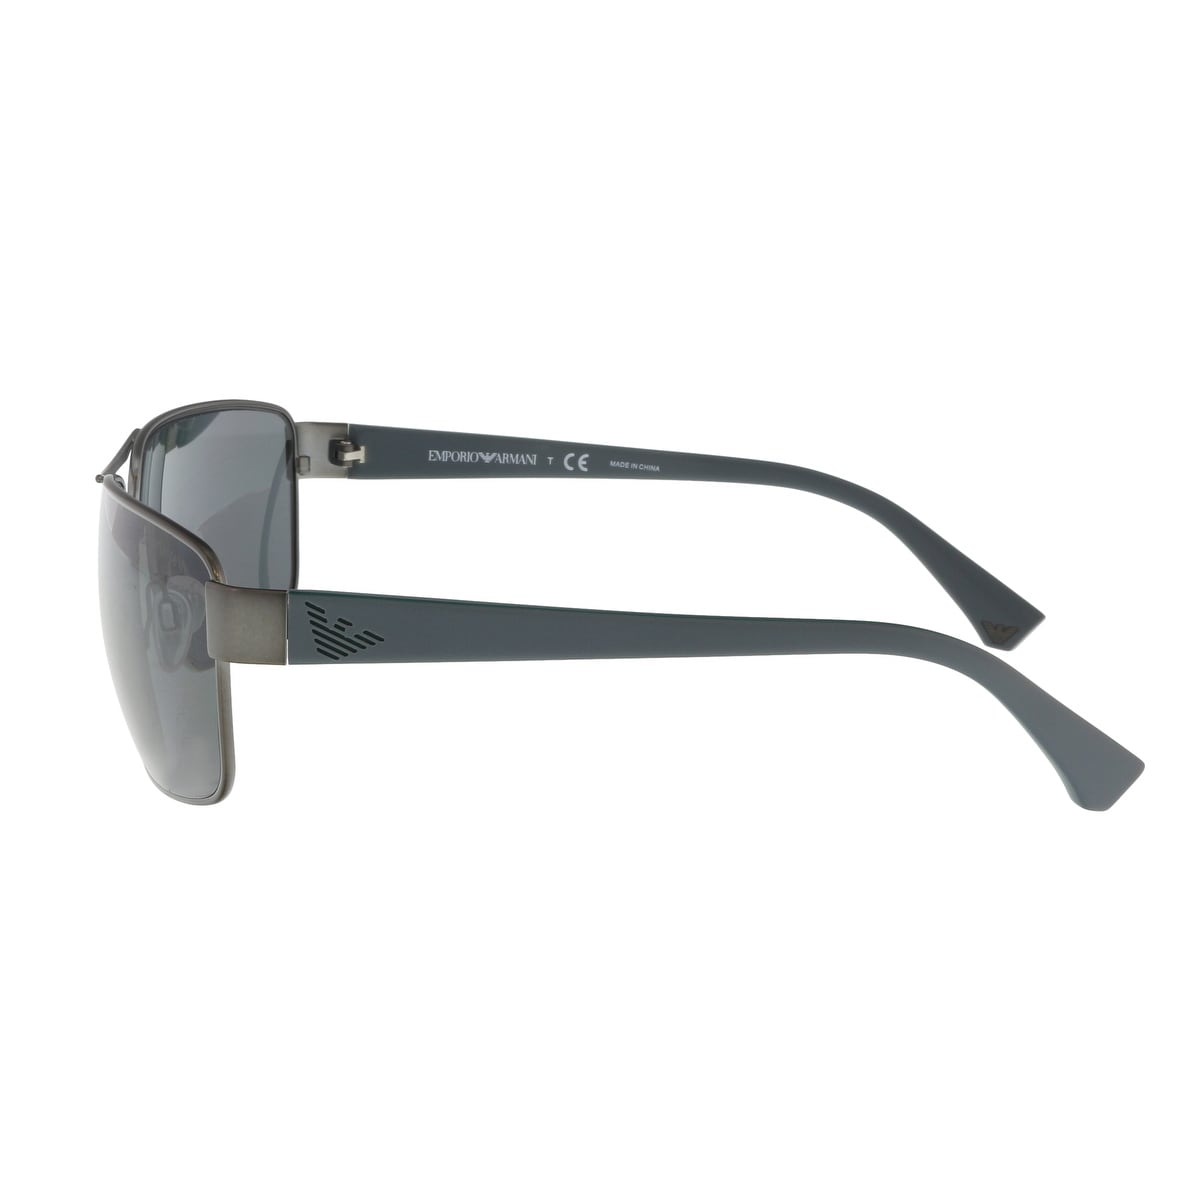 cd8cbc2ccd24 Shop Emporio Armani EA2031 311287 Gunmetal Grey Rectangle Sunglasses -  62-15-130 - Free Shipping Today - Overstock.com - 21158041